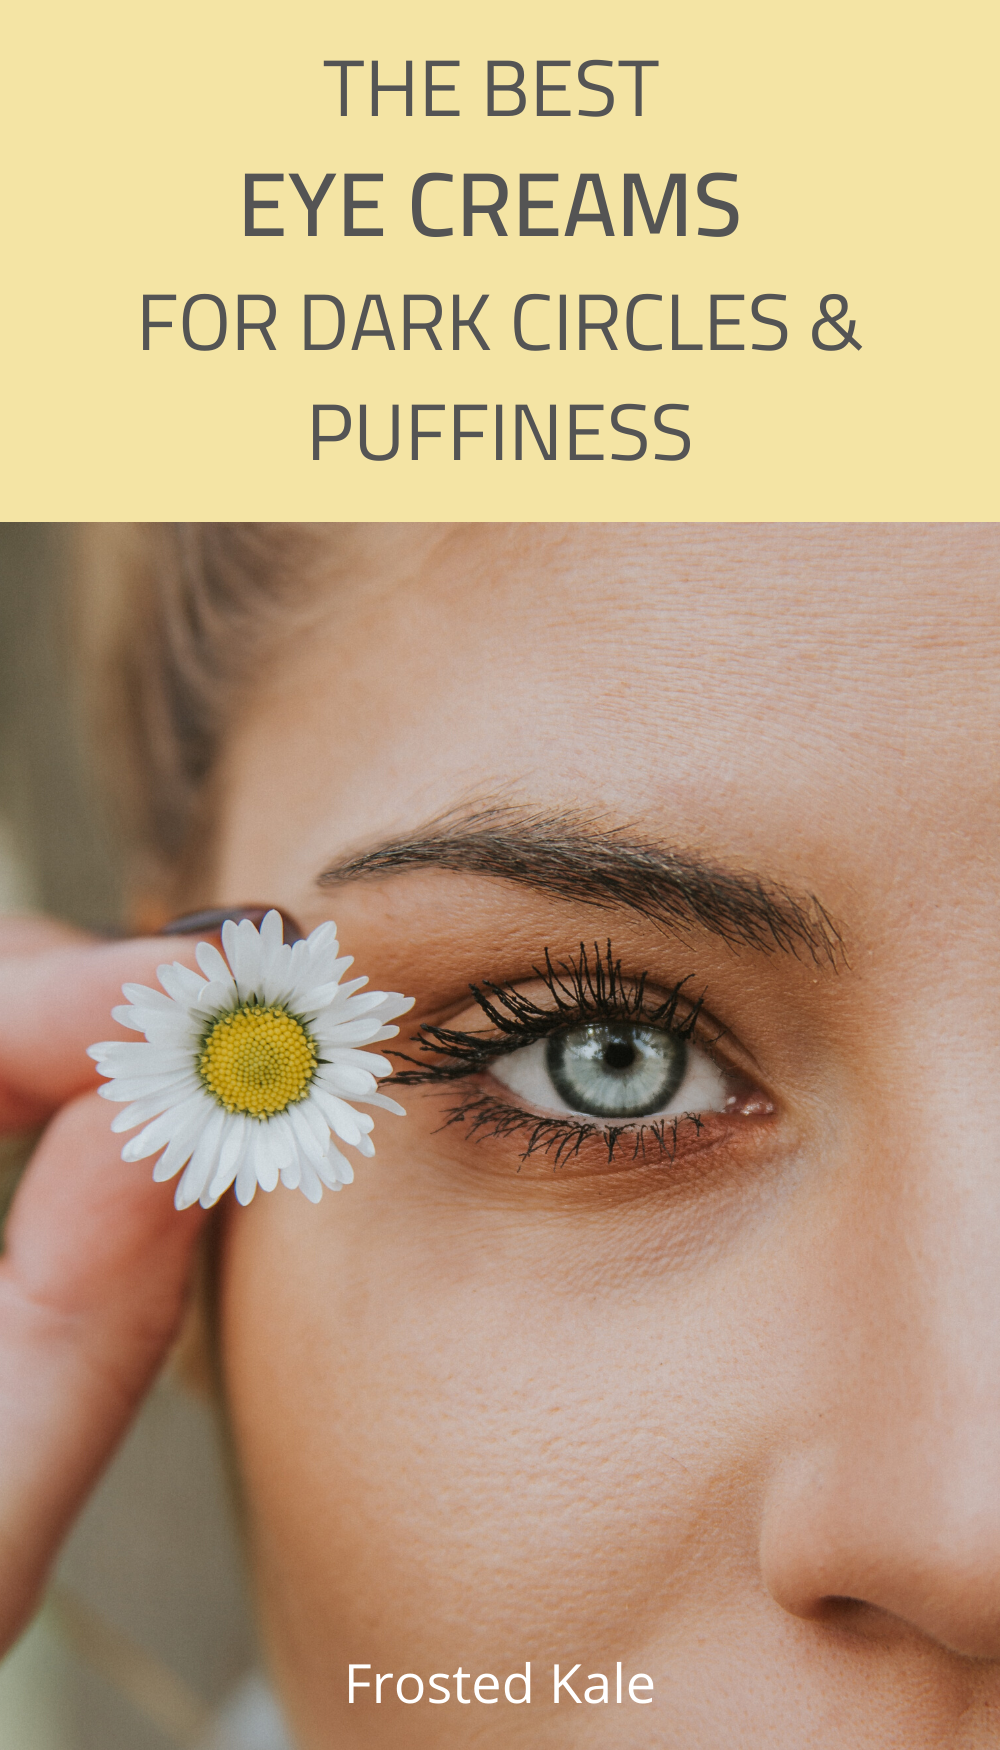 We have found the 5 best eye creams for puffiness